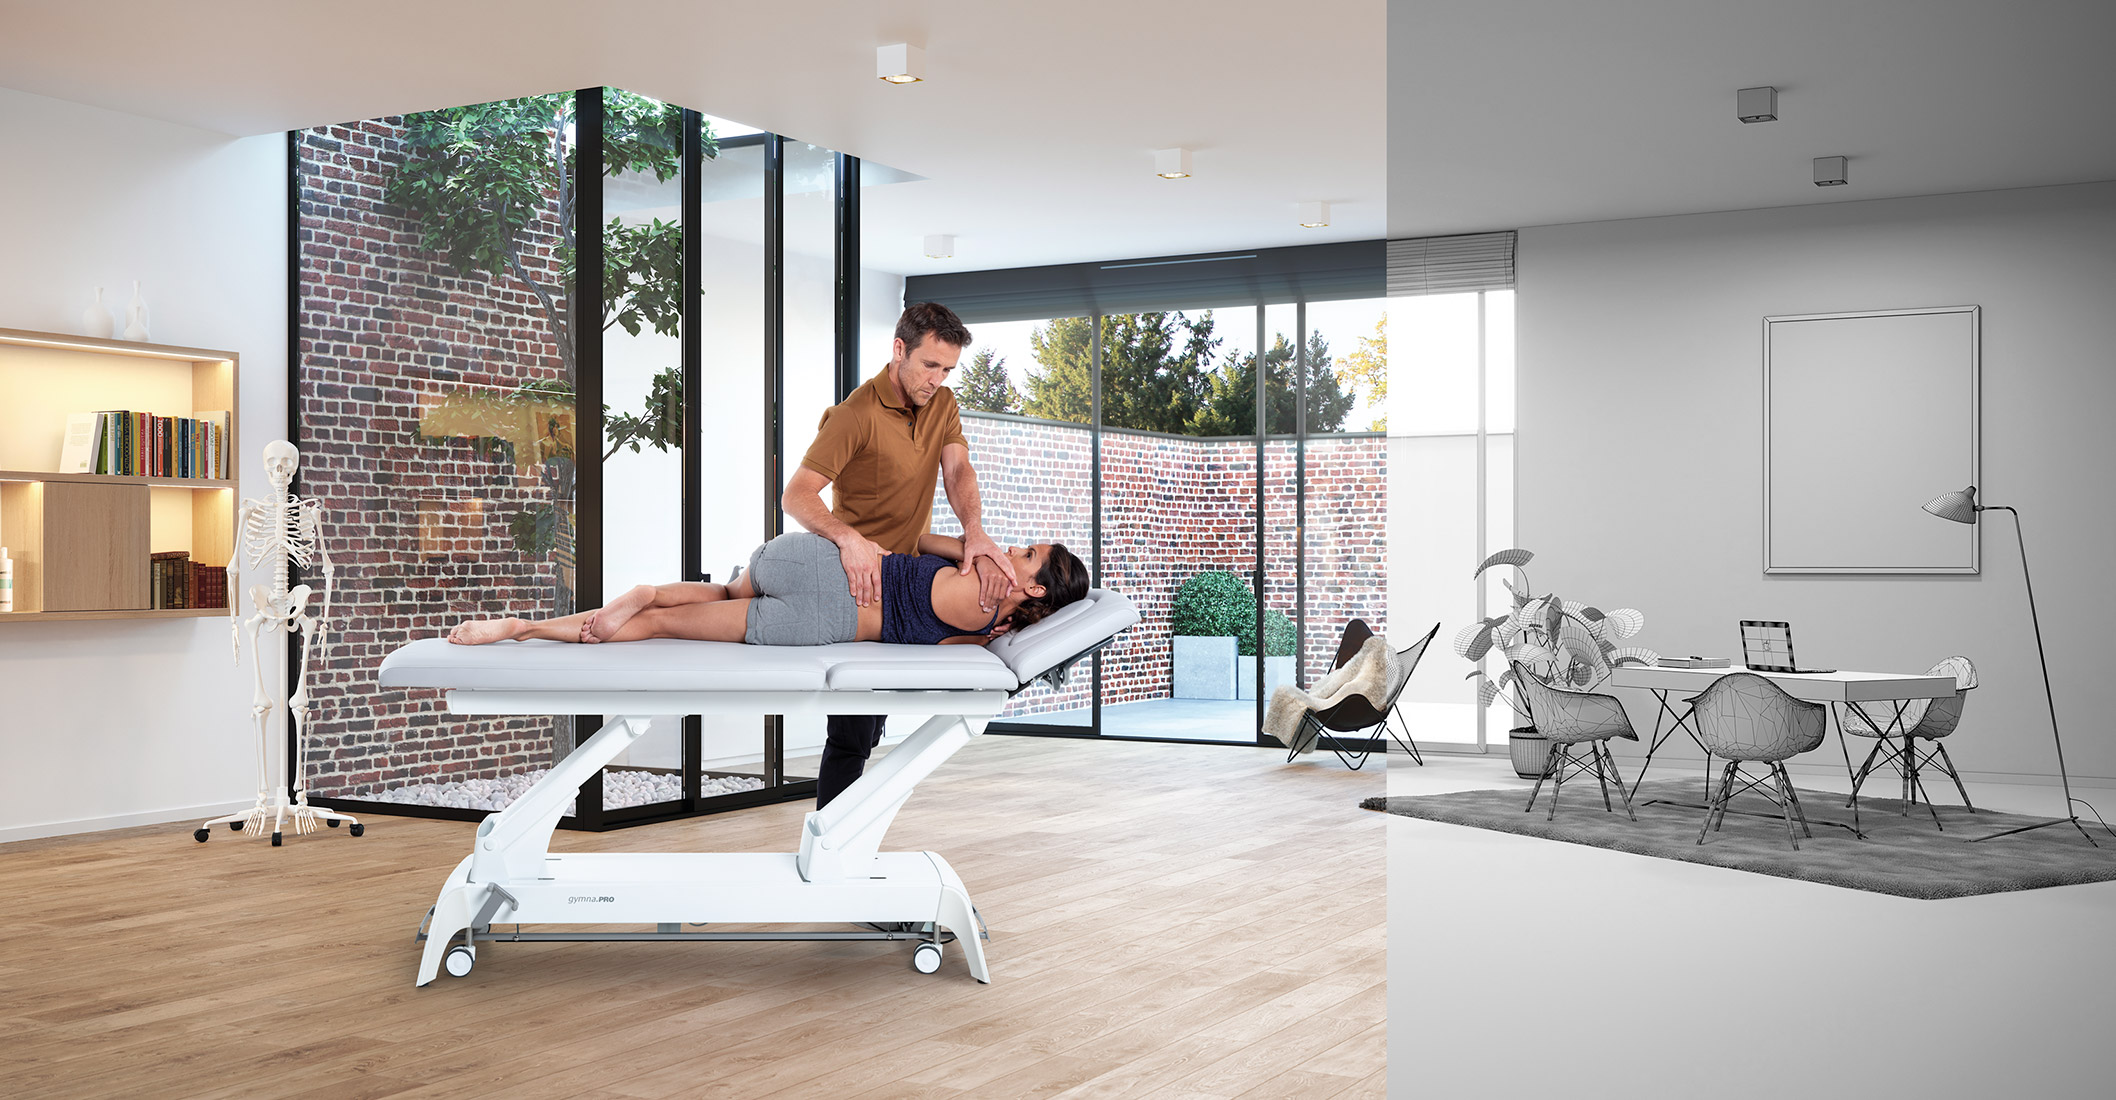 Physiotherapist caring for a patient on the treatment table